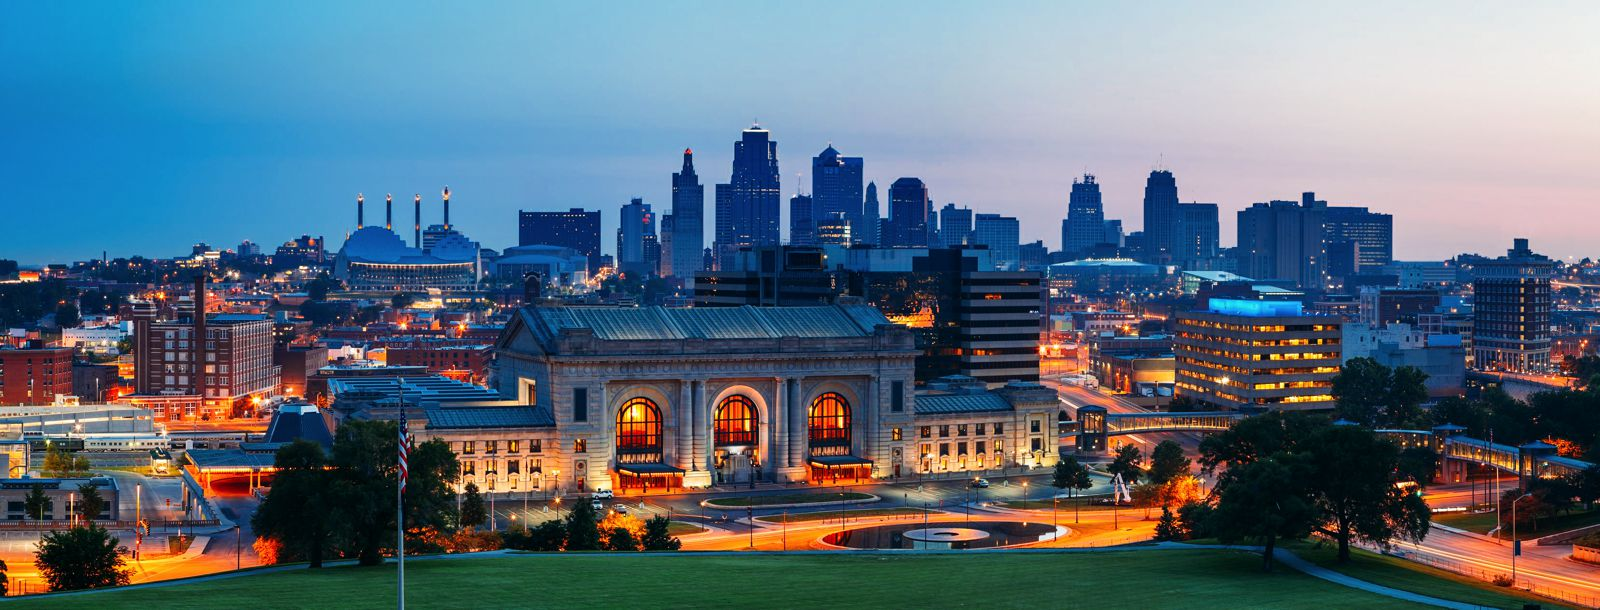 15 Of The Cheapest Cities In The USA That You Need To Visit (9)